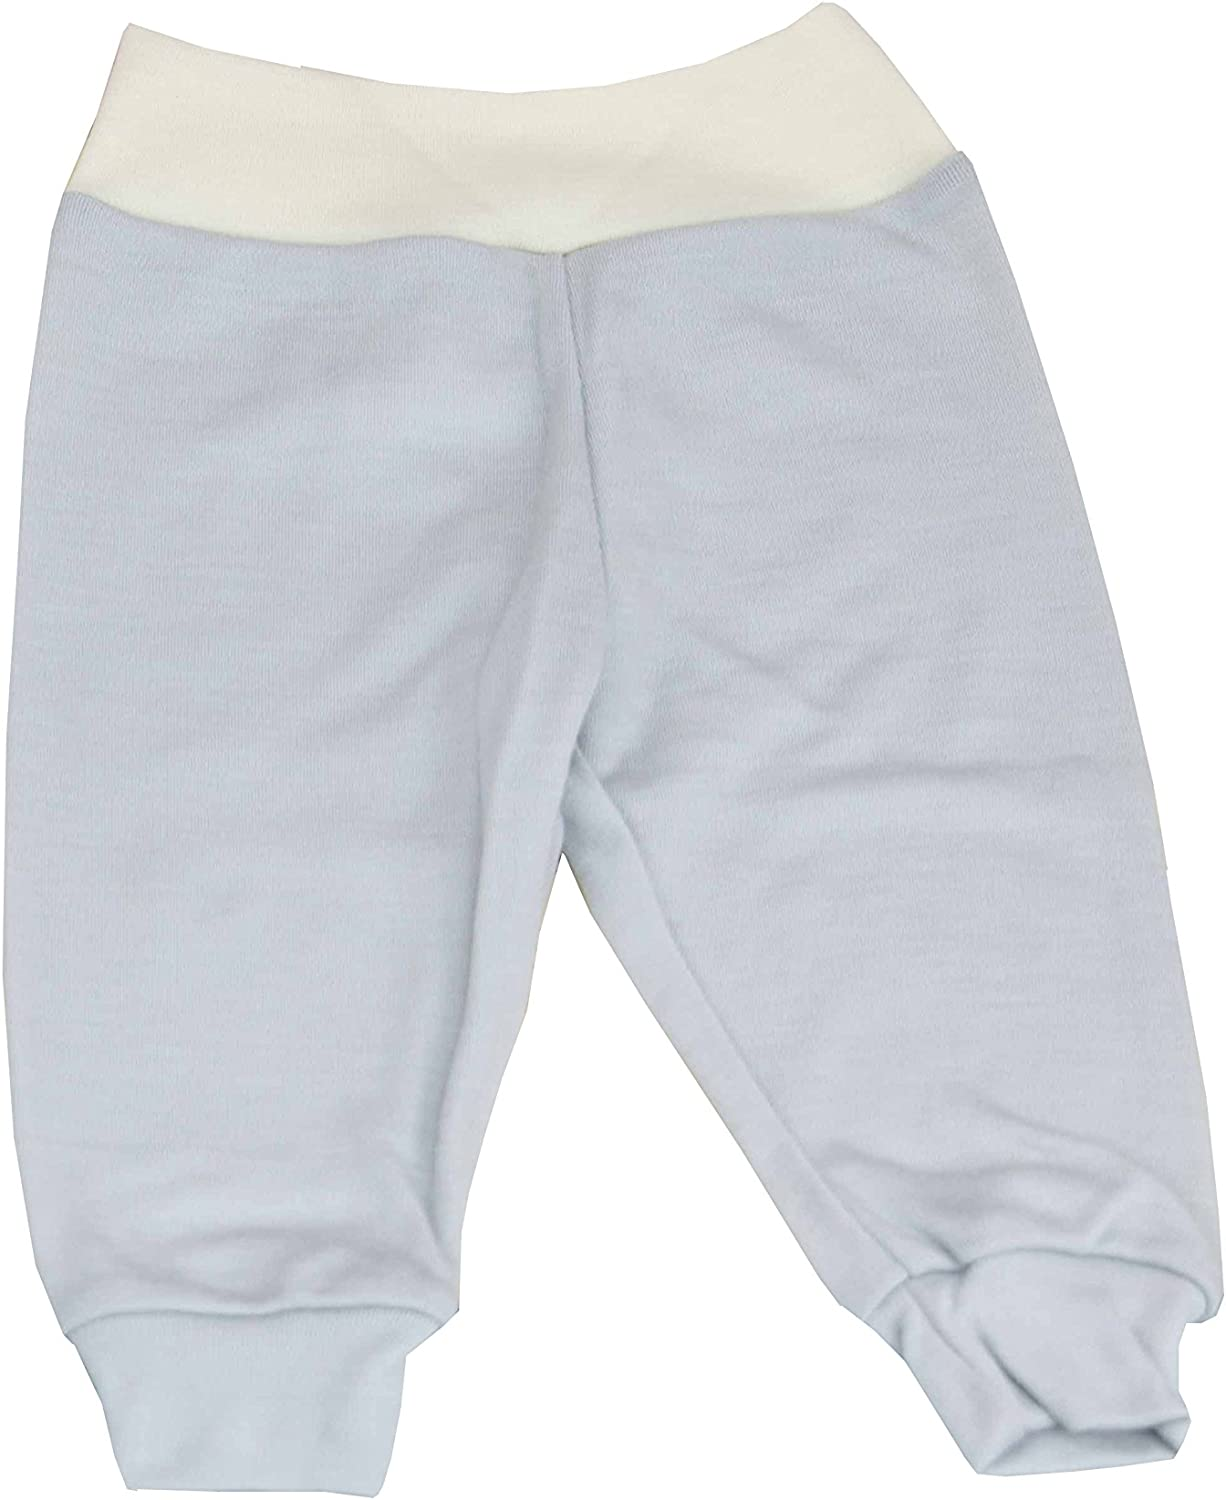 GREEN ROSE Pants for Kids Baby Boy Girl Unisex Trousers 0-24 Month 100/% Natural Merino Wool